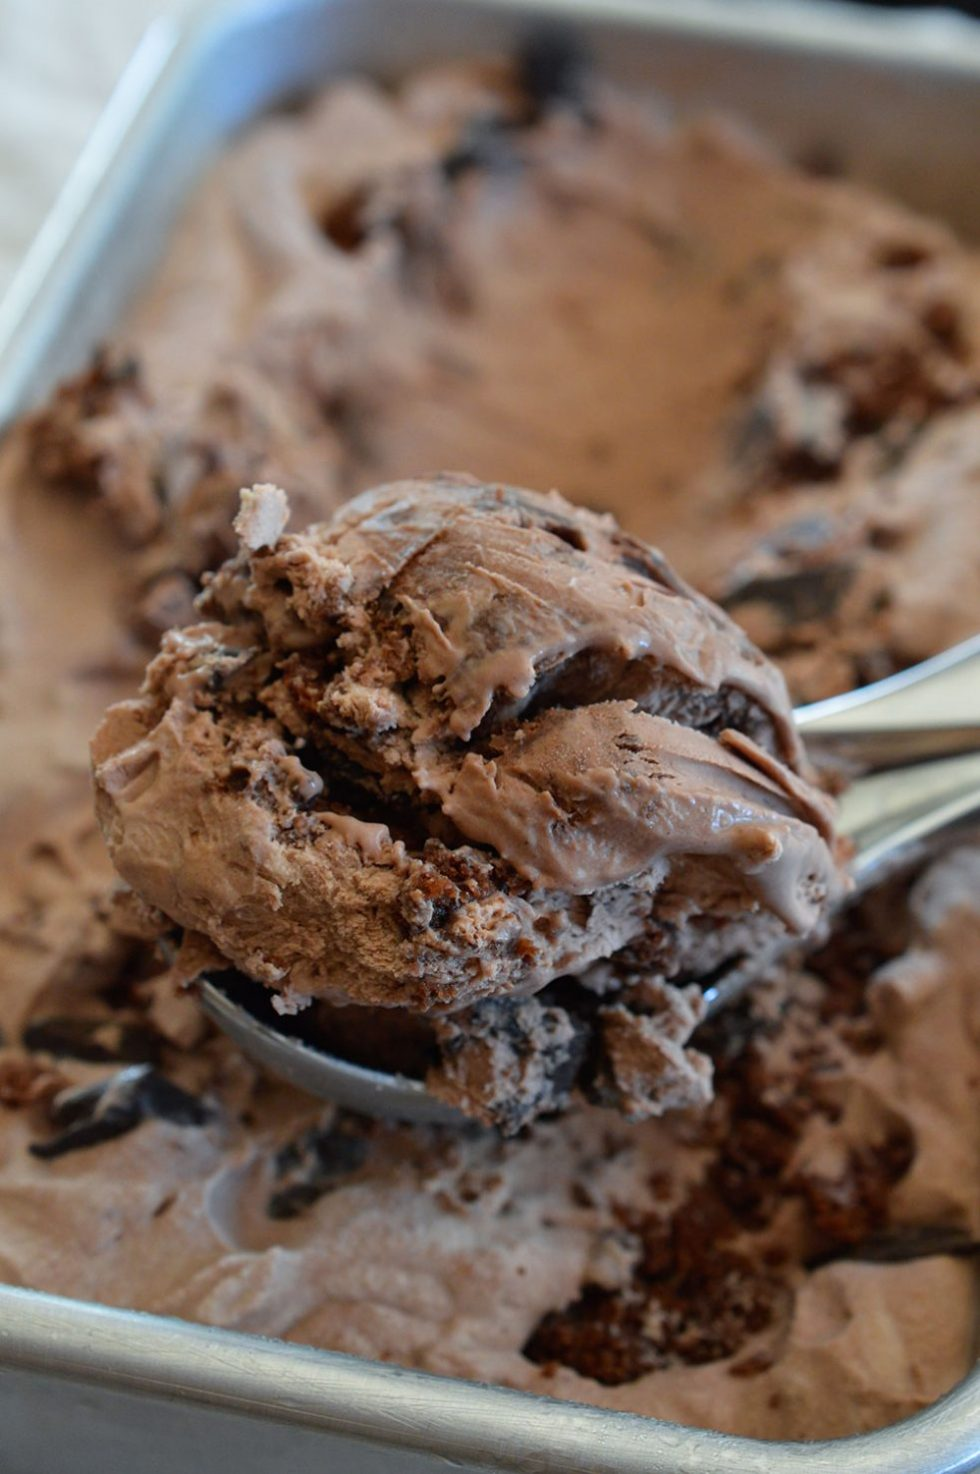 Extreme Chocolate Ice Cream is a must make recipe. This No Churn Ice Cream is packed with Chocolate Chunks and Brownies! Inspired by my favorite Dairy Queen Blizzard flavor. Death By Chocolate never tasted so good!